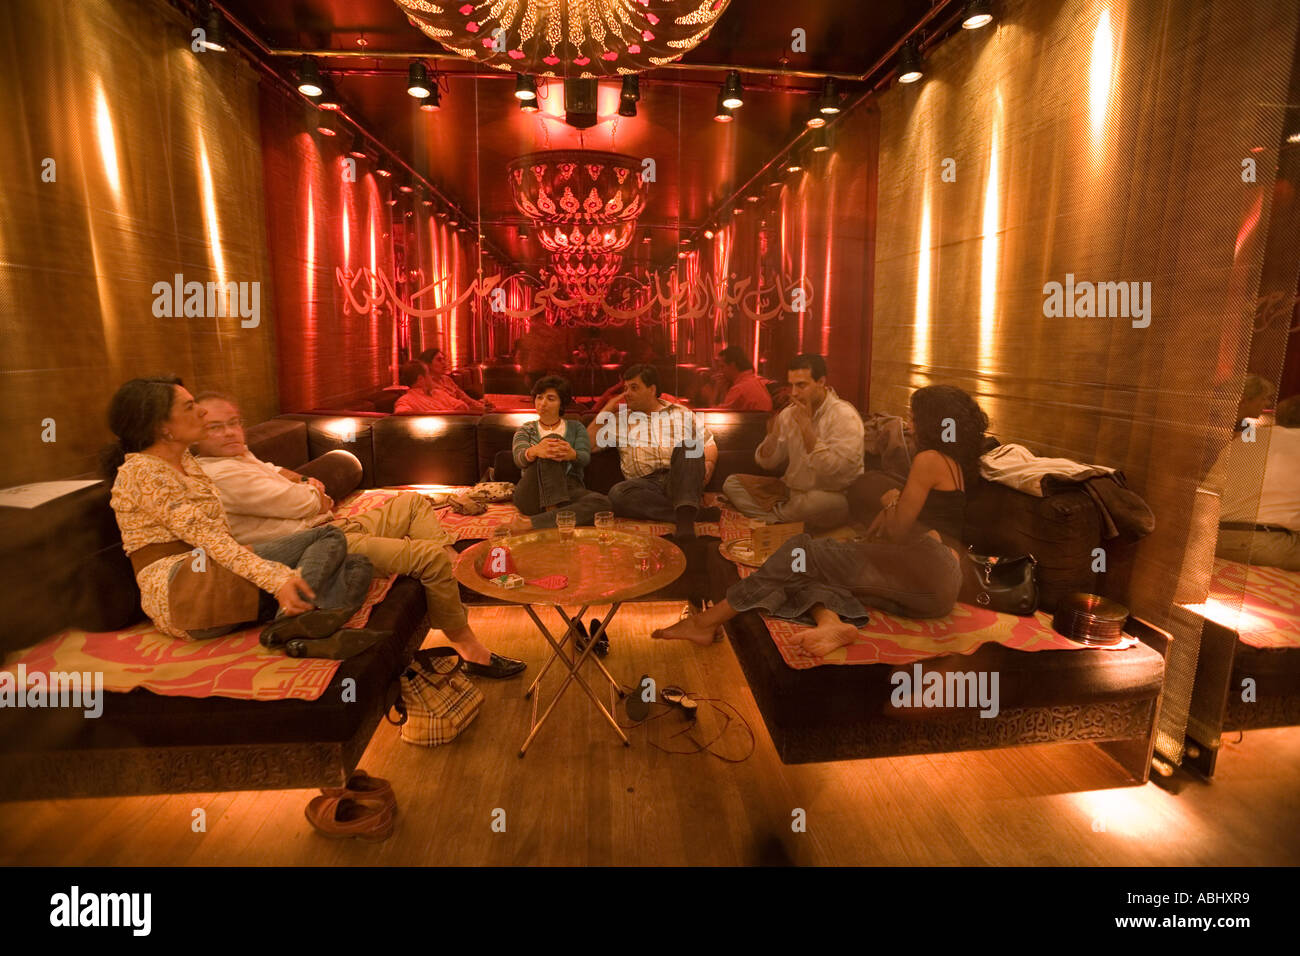 People relaxing on lounge at Nomads arabic style ...